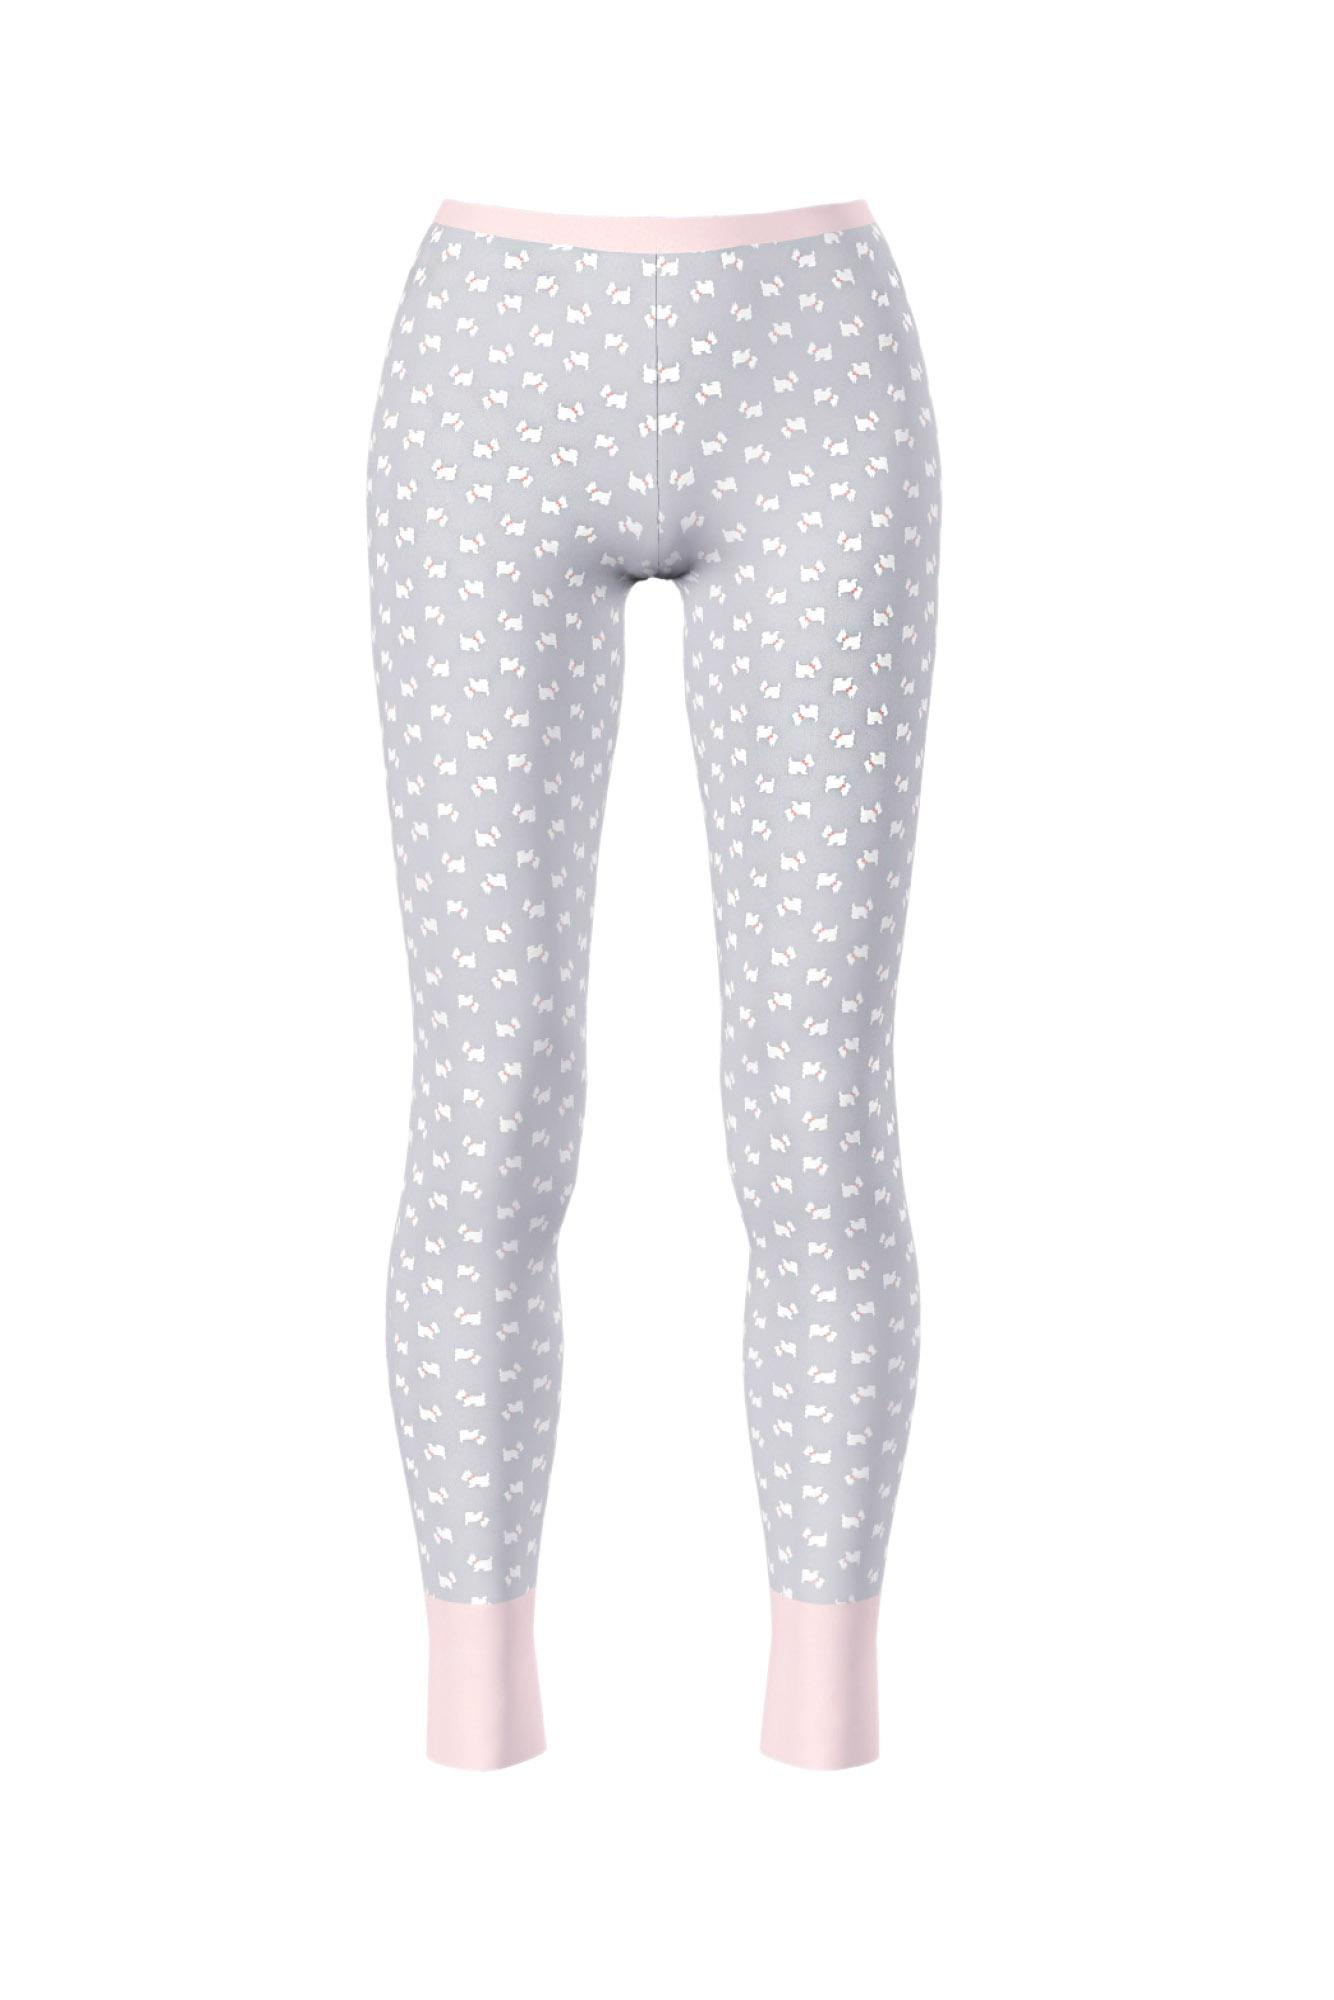 Women's Cotton Patterned Leggings